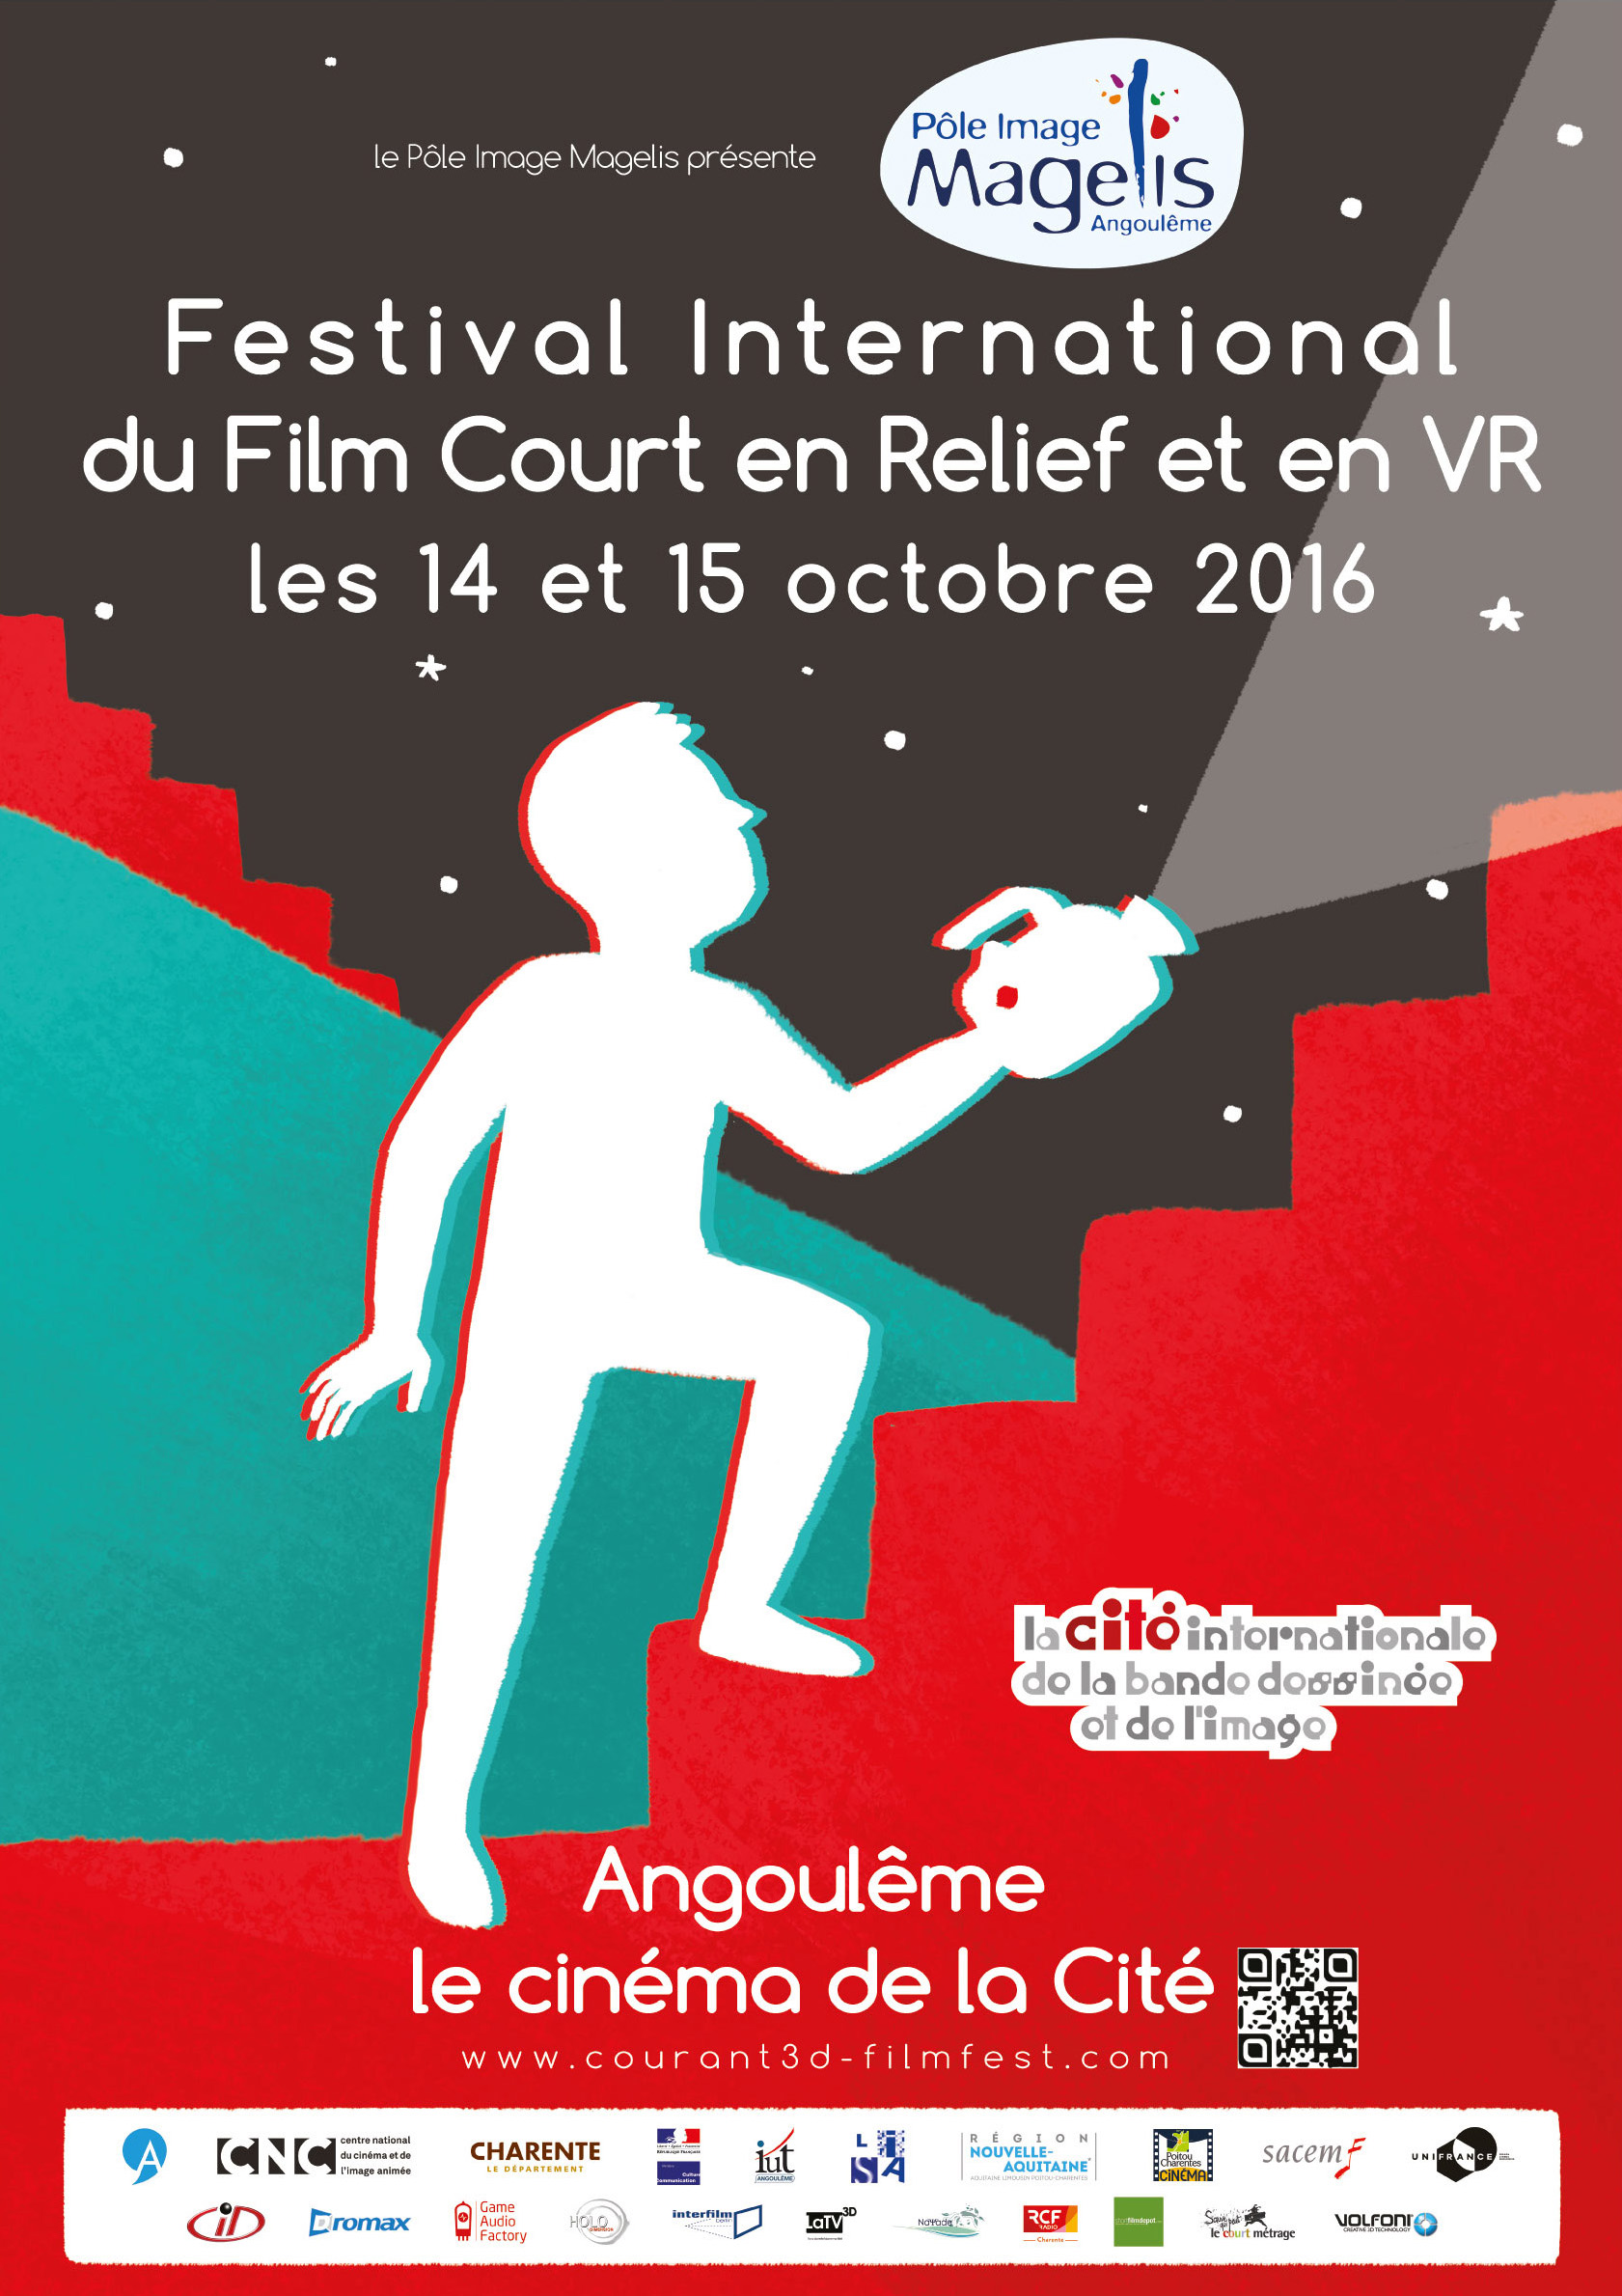 2016 Poster of the International Film Festival runs in relief and virtual reality, Angouleme, Courant3D